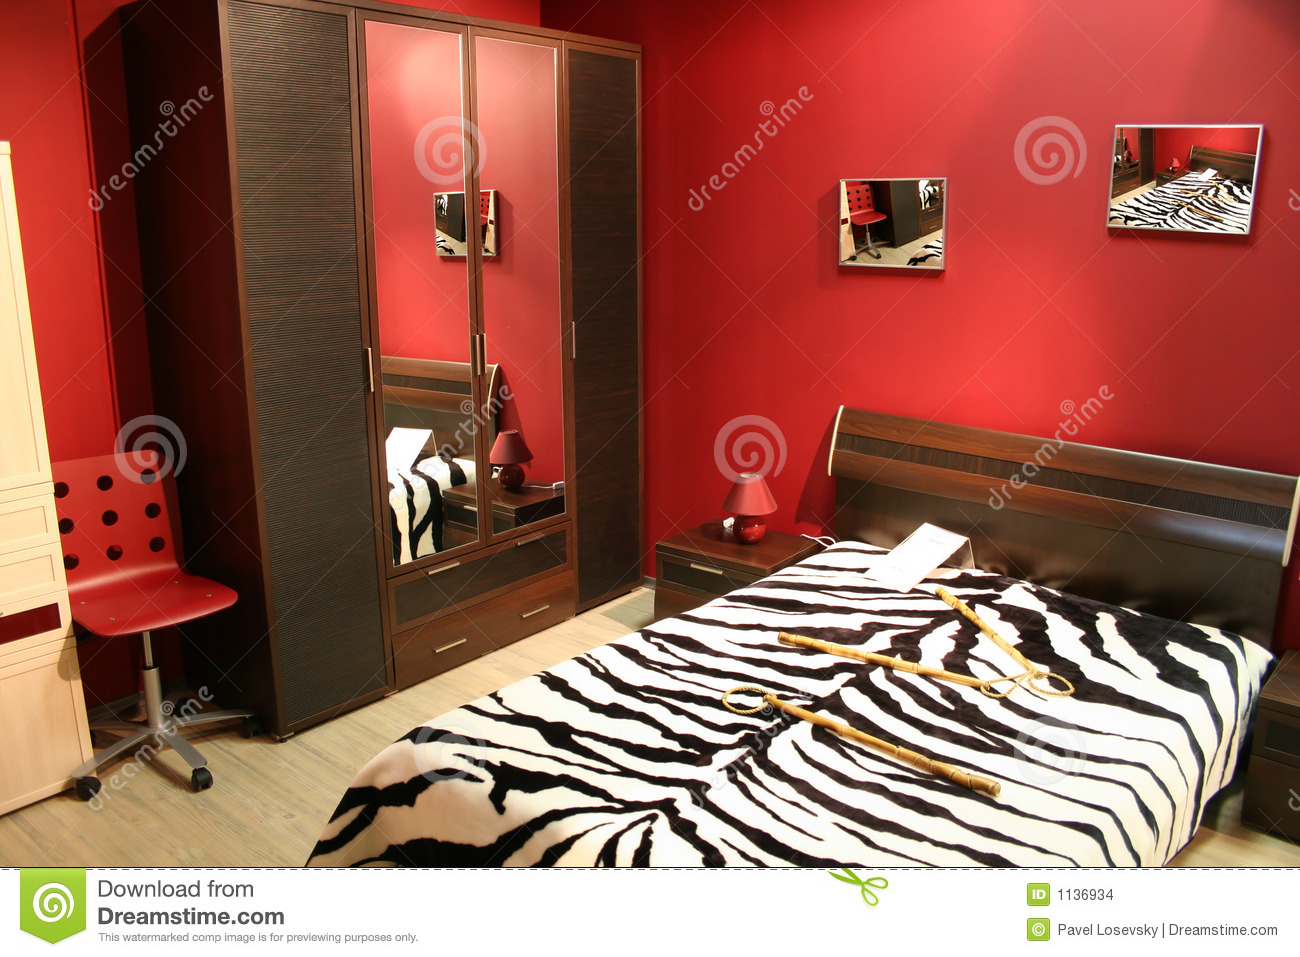 Rode Slaapkamer Lamp : Red and Zebra Bedroom Ideas